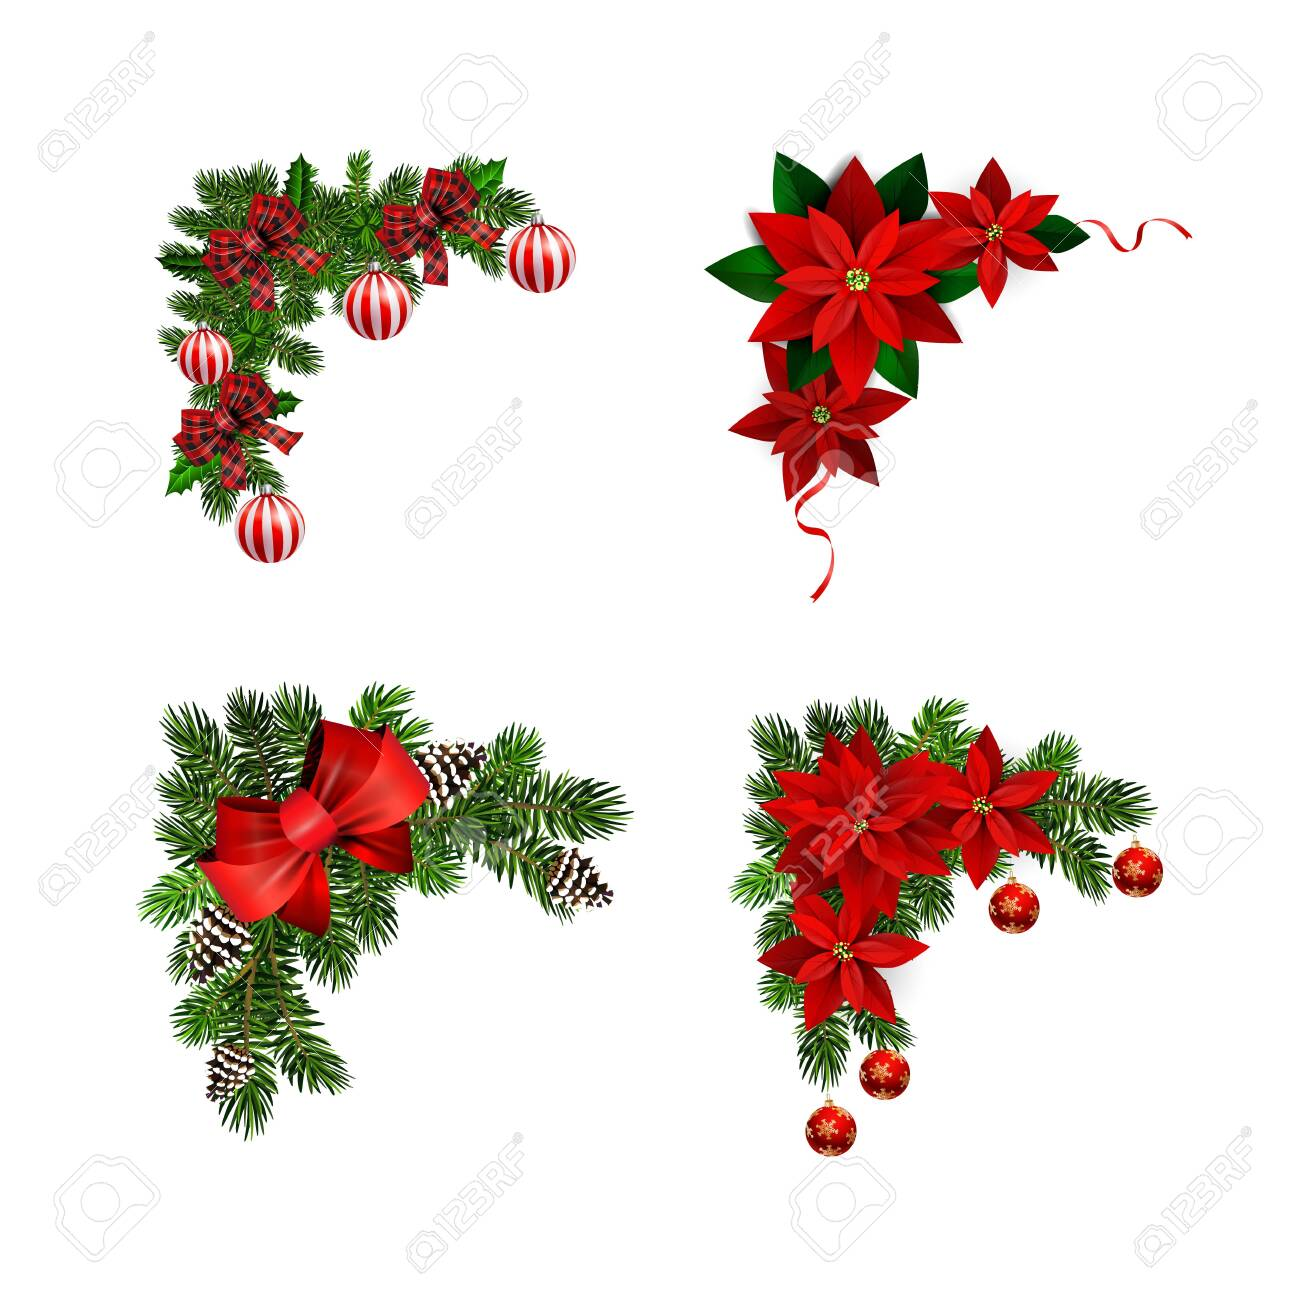 Christmas decorations with fir tree collection isolated - 134487281